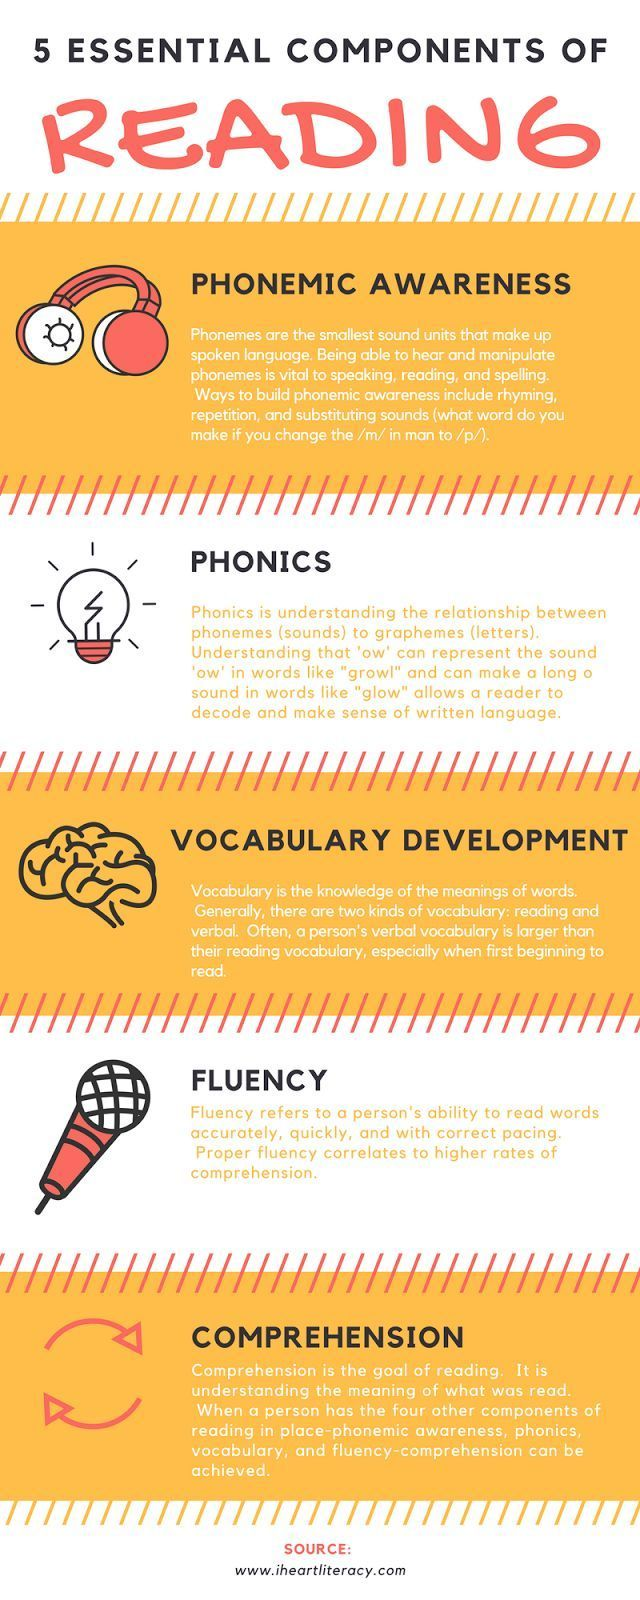 5 Essential Components of Reading Instruction: Phonemic Awareness, Phonics, Vocabulary, Fluency, and Comprehension